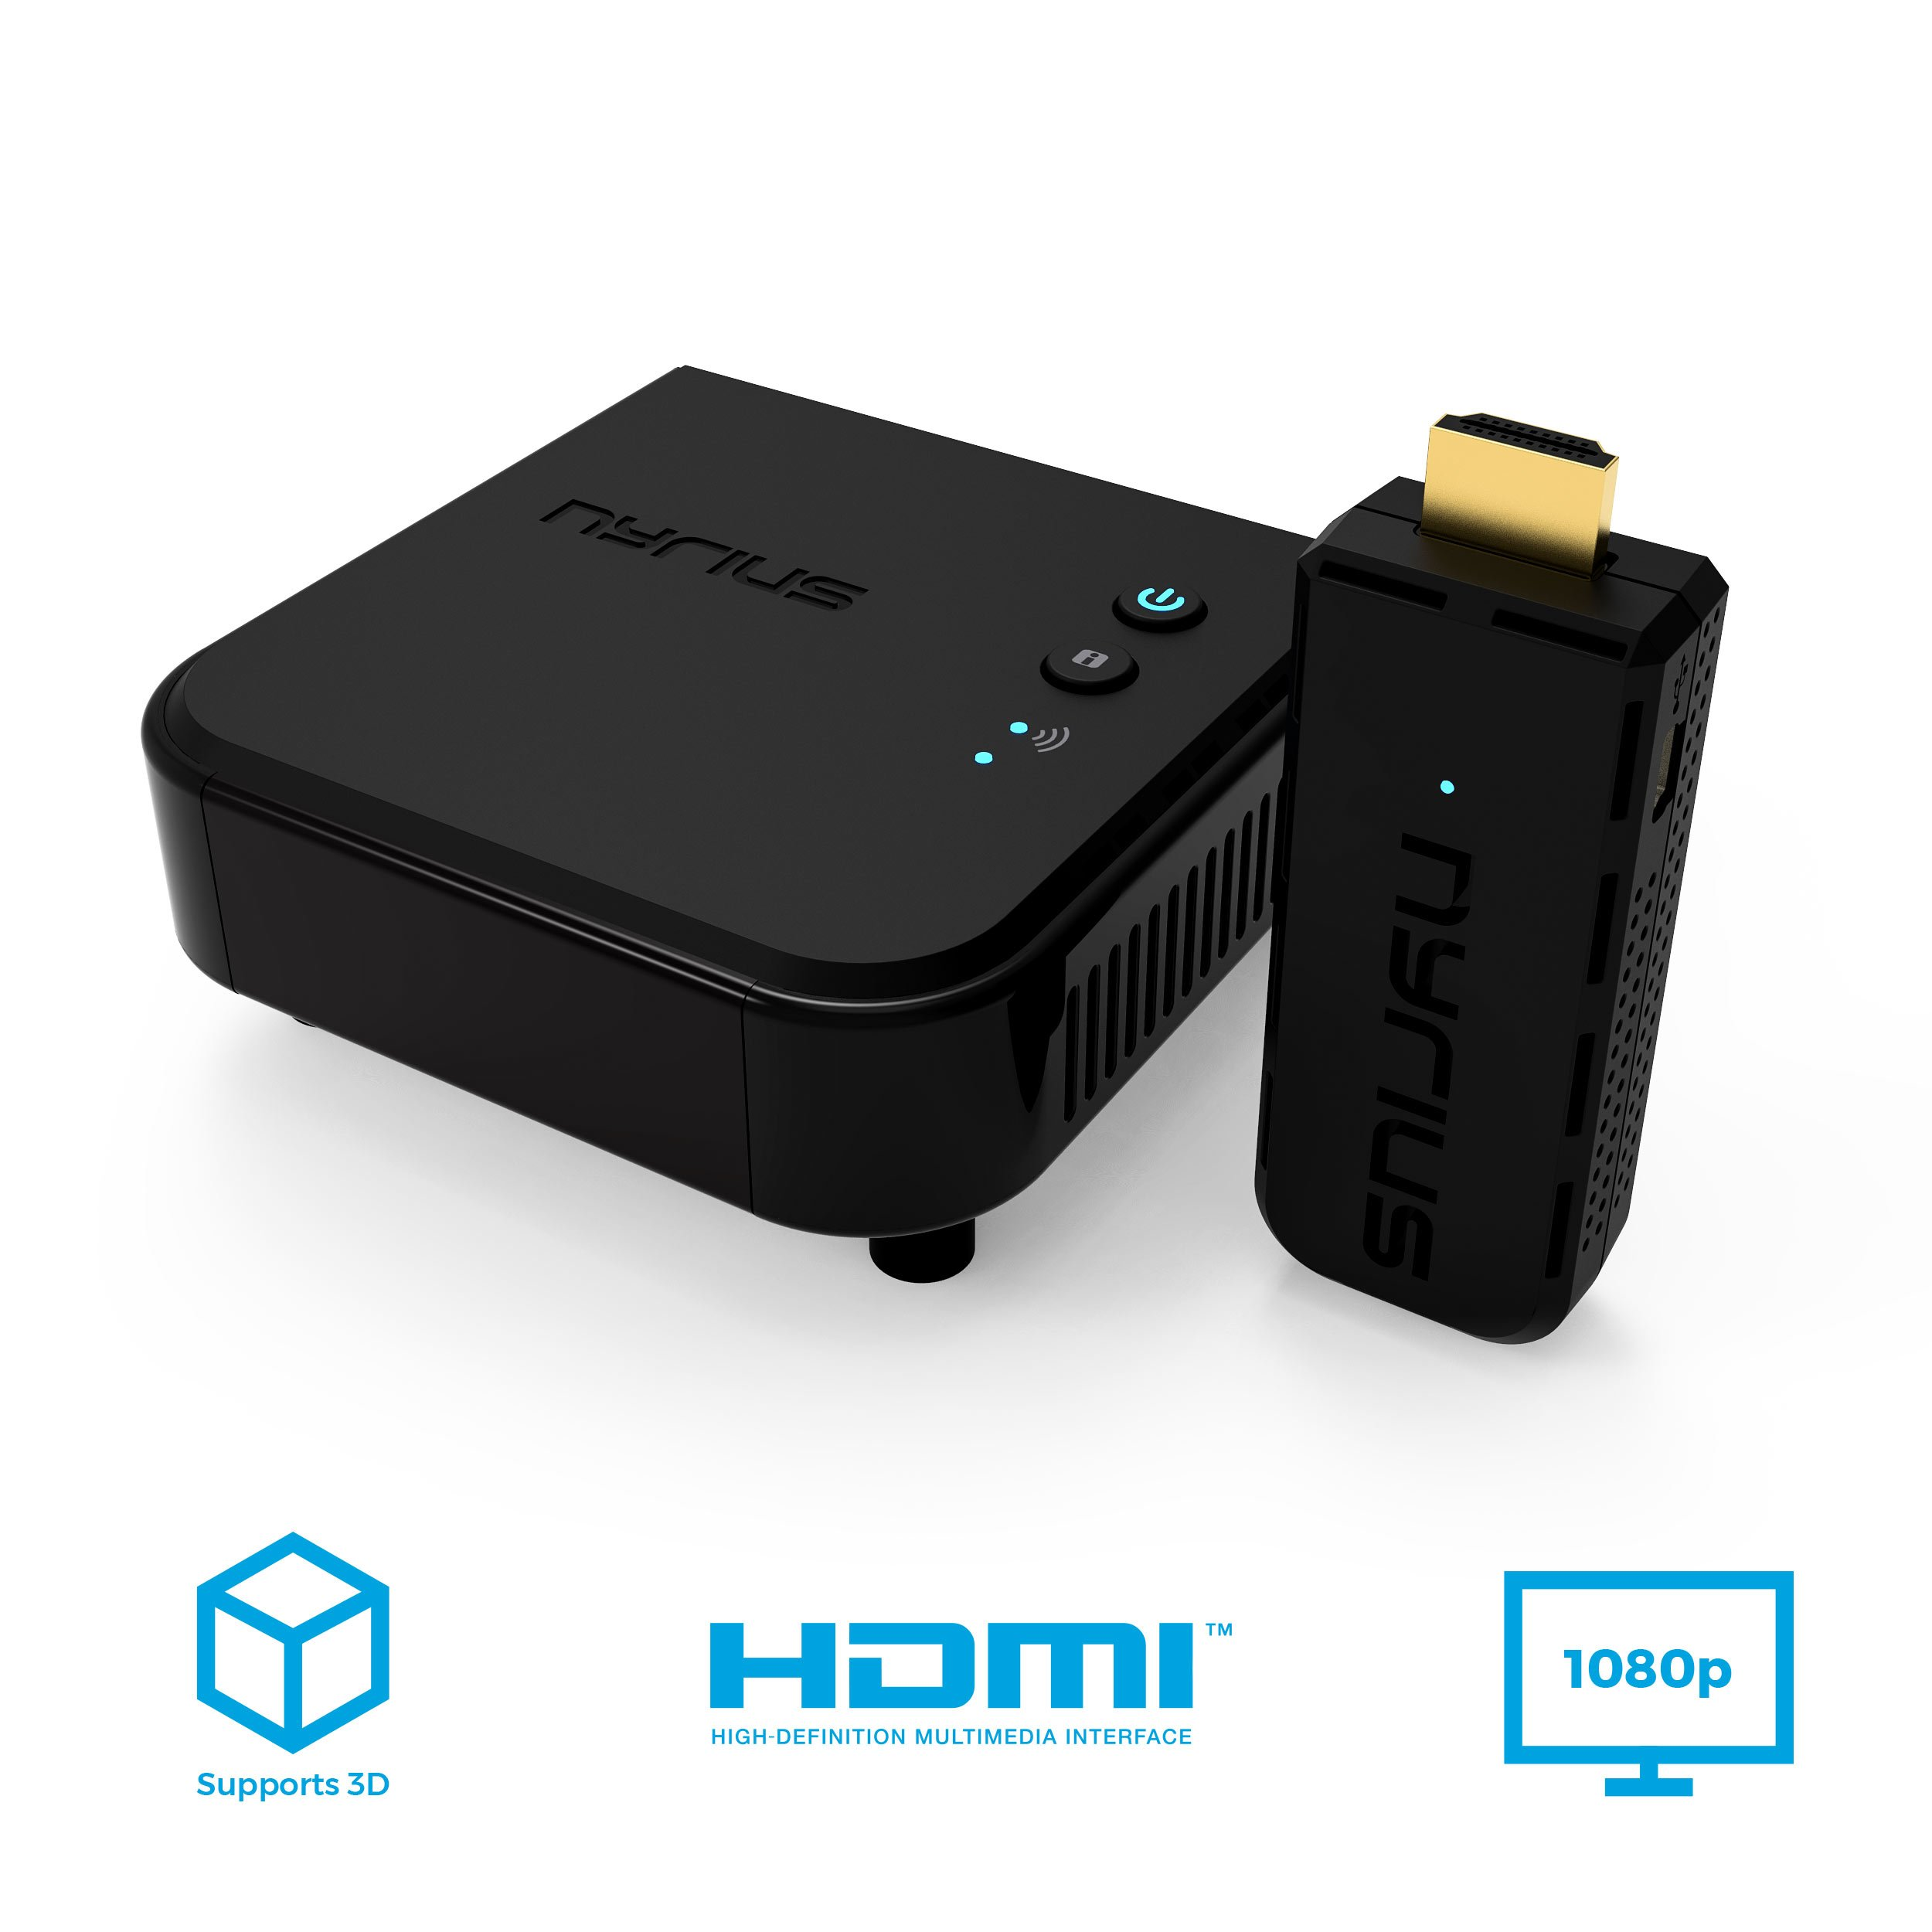 Nyrius Aries Prime Wireless Video HDMI Transmitter & Receiver for Streaming HD 1080p 3D Video & Digital Audio from Laptop, PC, Cable, Netflix, YouTube, PS4, Xbox One to HDTV/Projector (NPCS549) by Nyrius (Image #8)